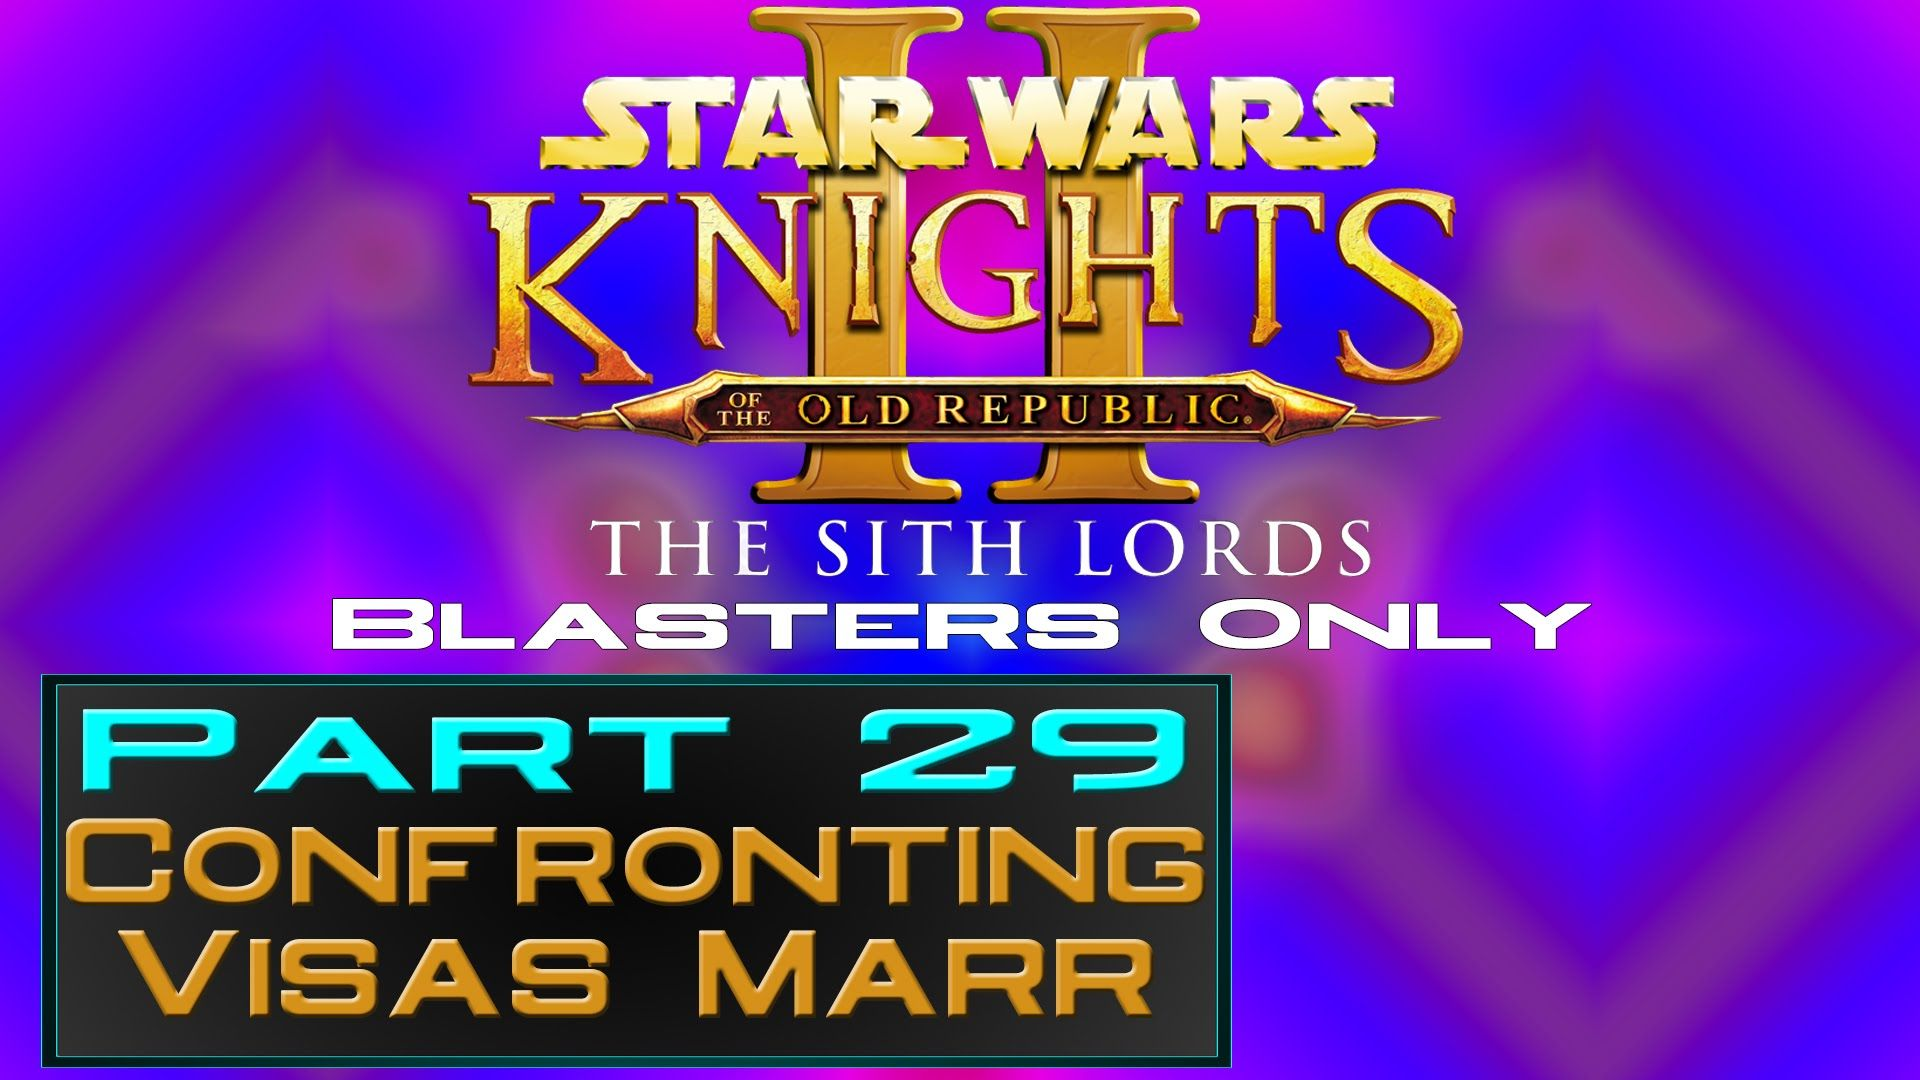 Star Wars Knights of the Old Republic 2 | Blasters Only | Part 29: Confr...